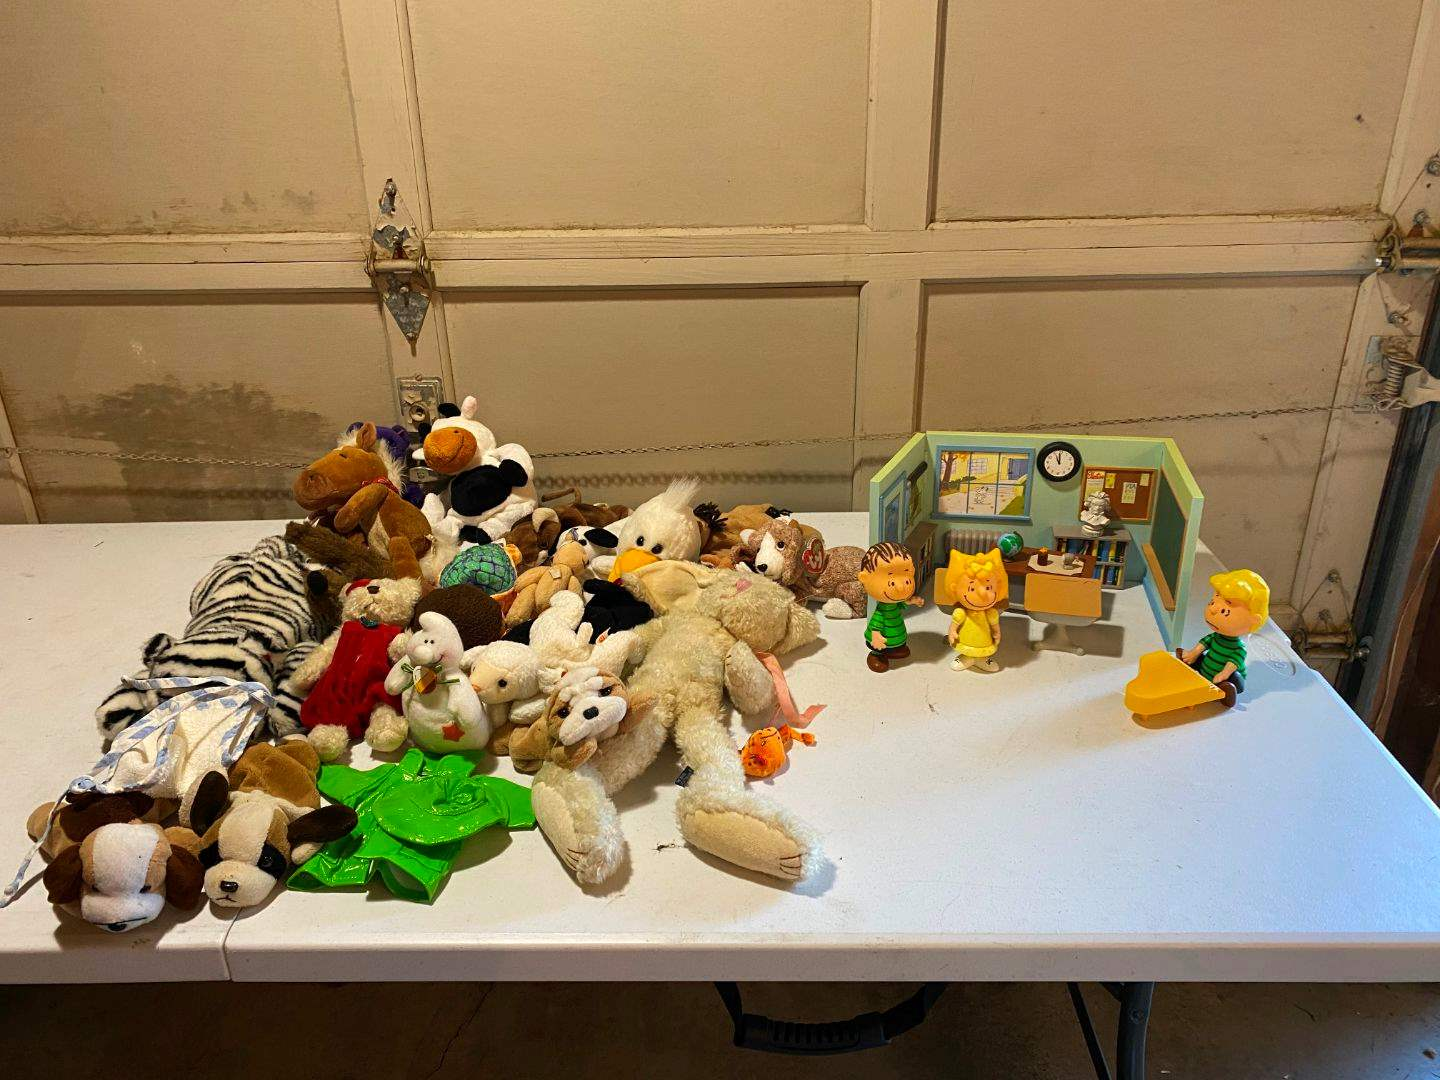 Lot # 227 - Charlie Brown Toys, Beanie Babies & Other Misc Stuffed Animals (main image)